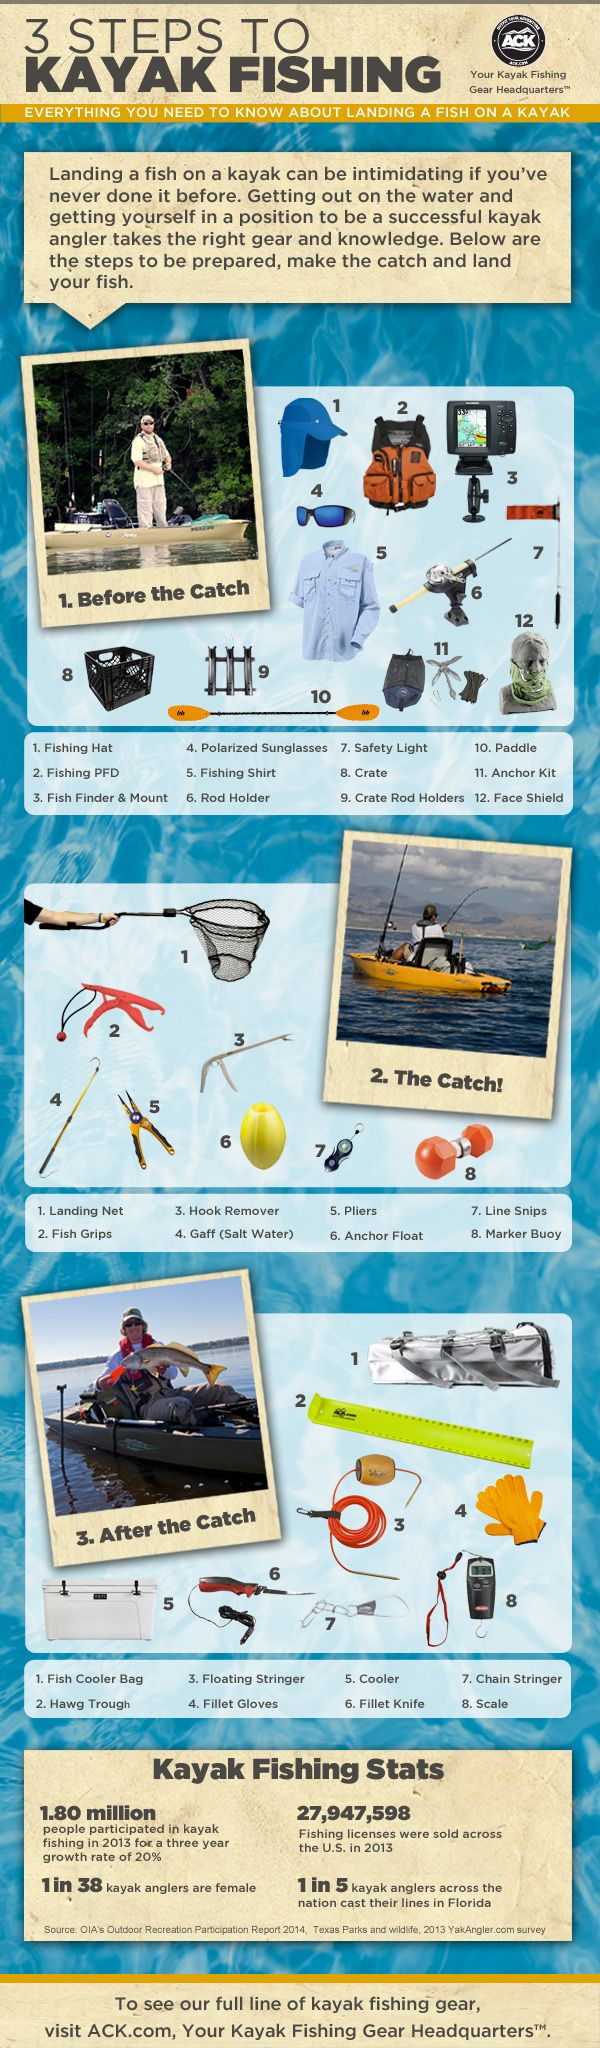 Just starting out in Kayak fishing?  We have a great three steps for before, during and after the catch.